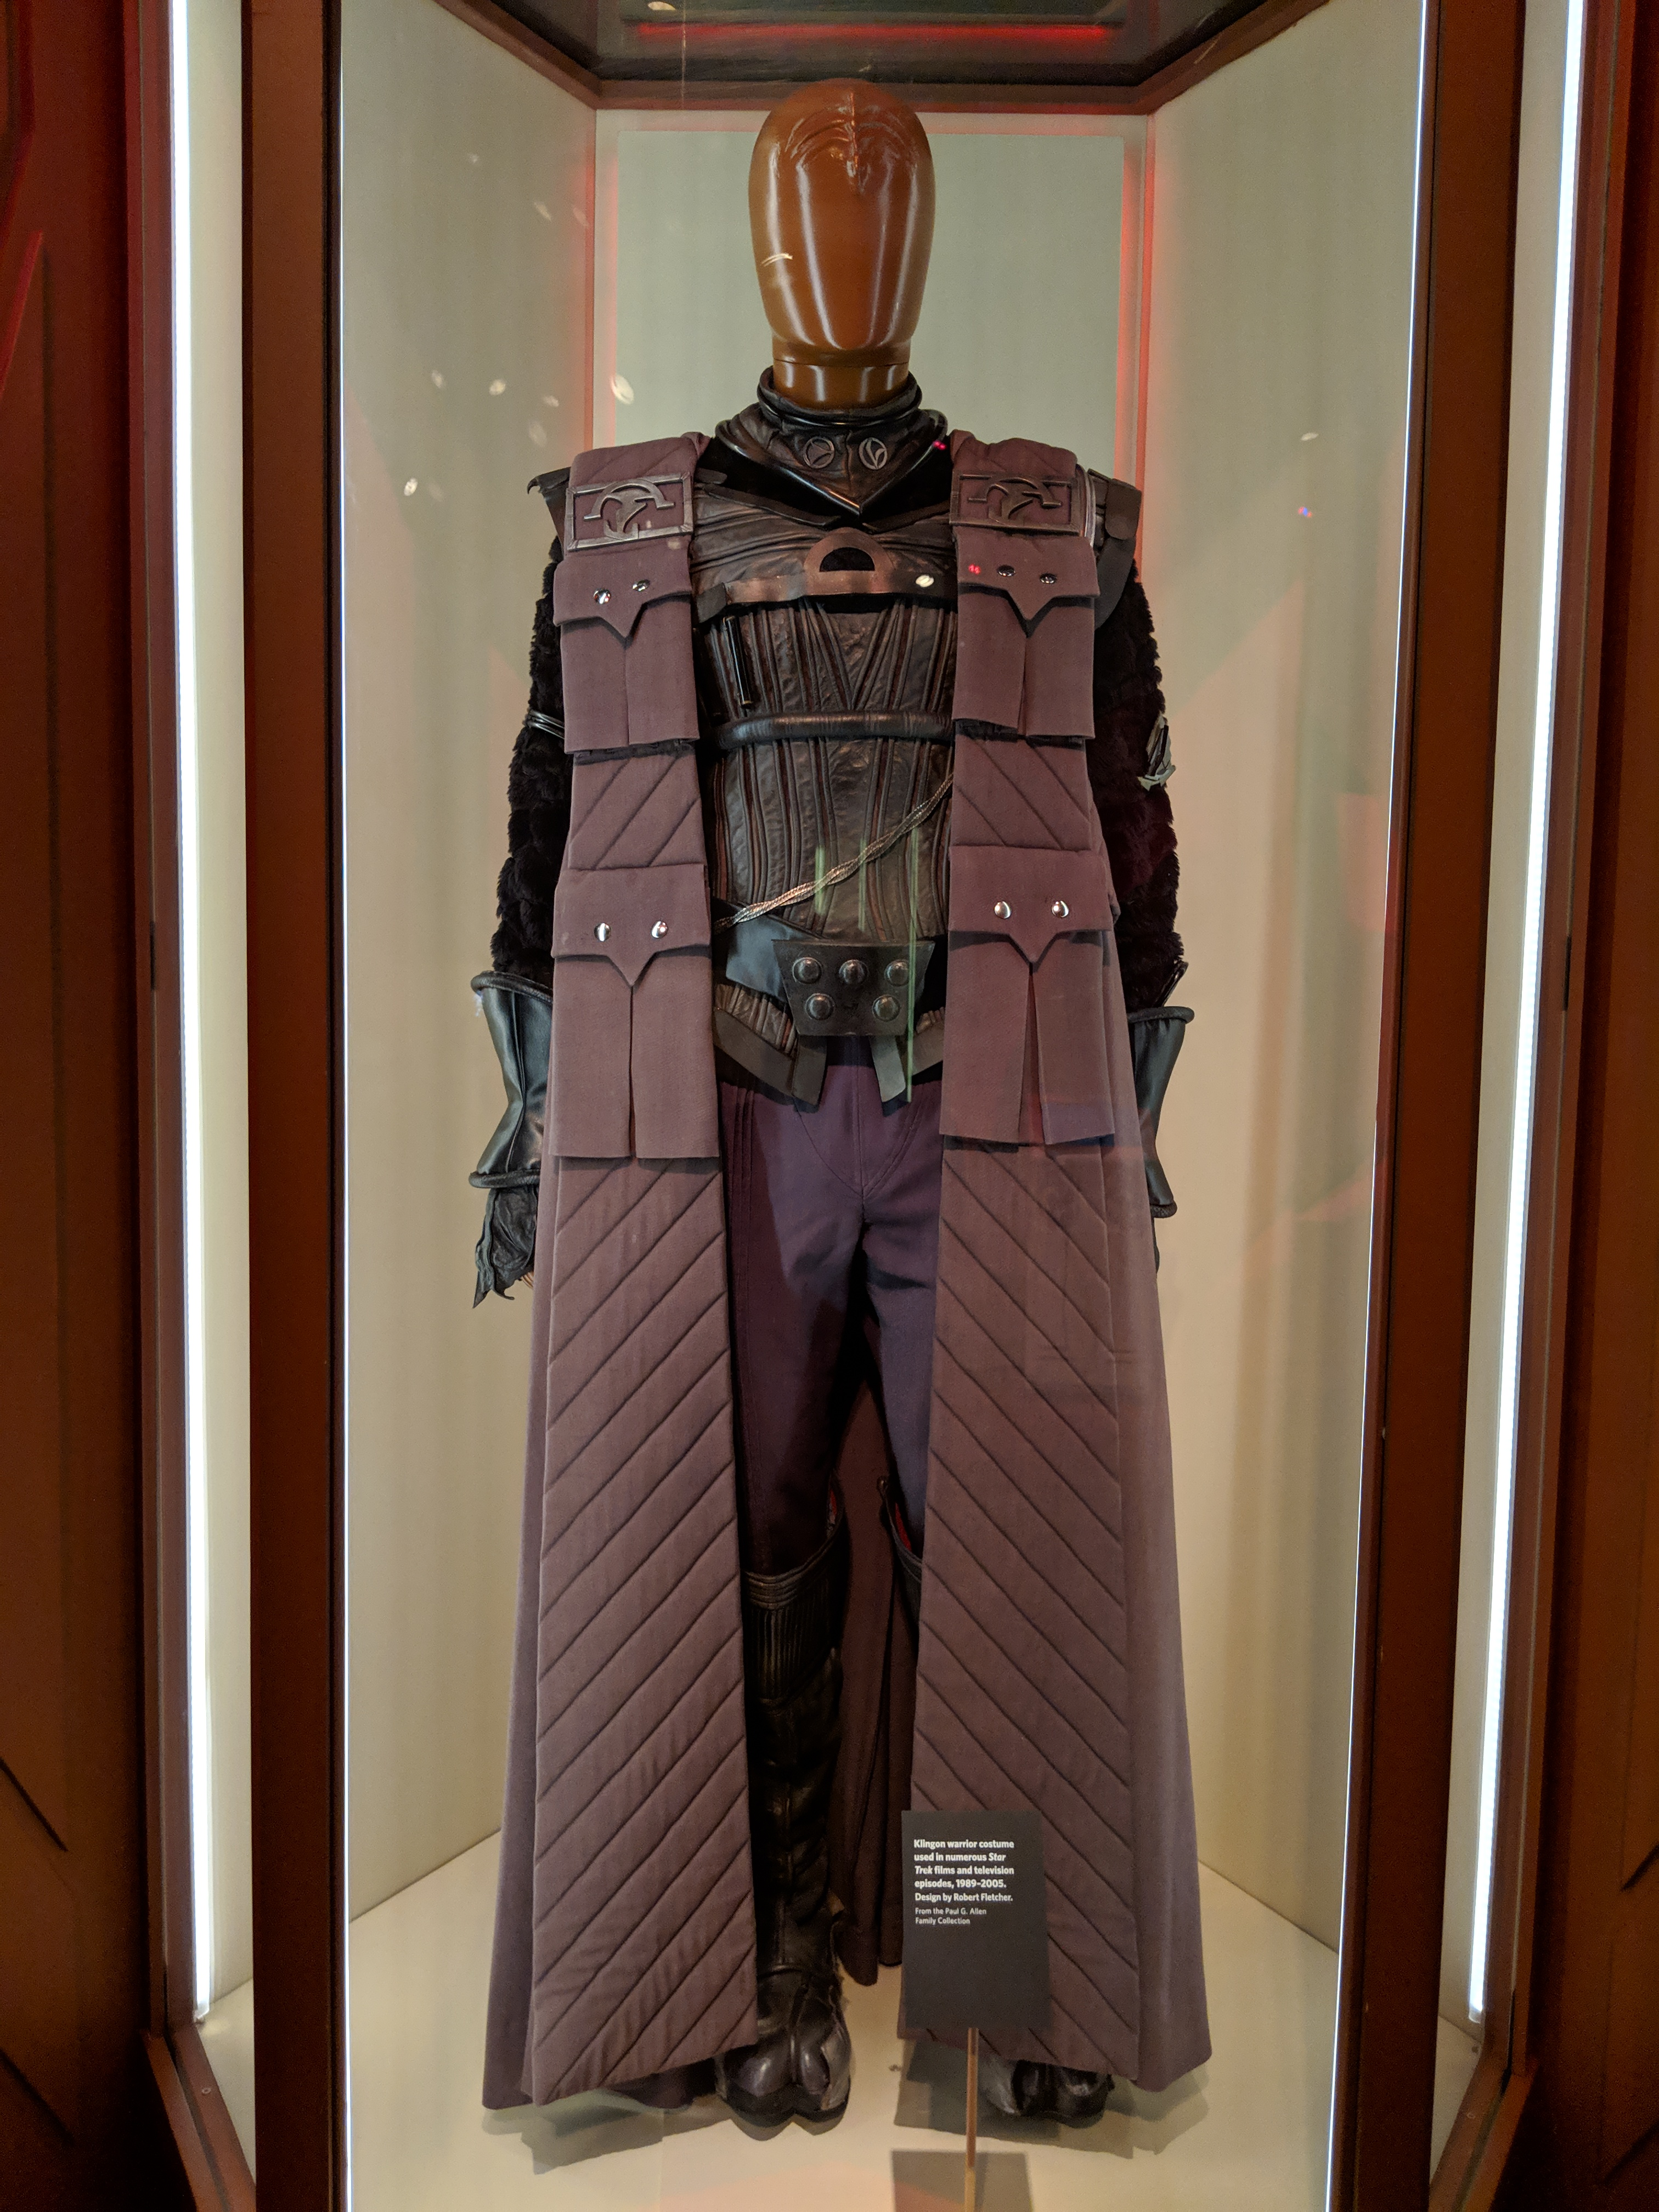 Photo of Klingon Warrior costume